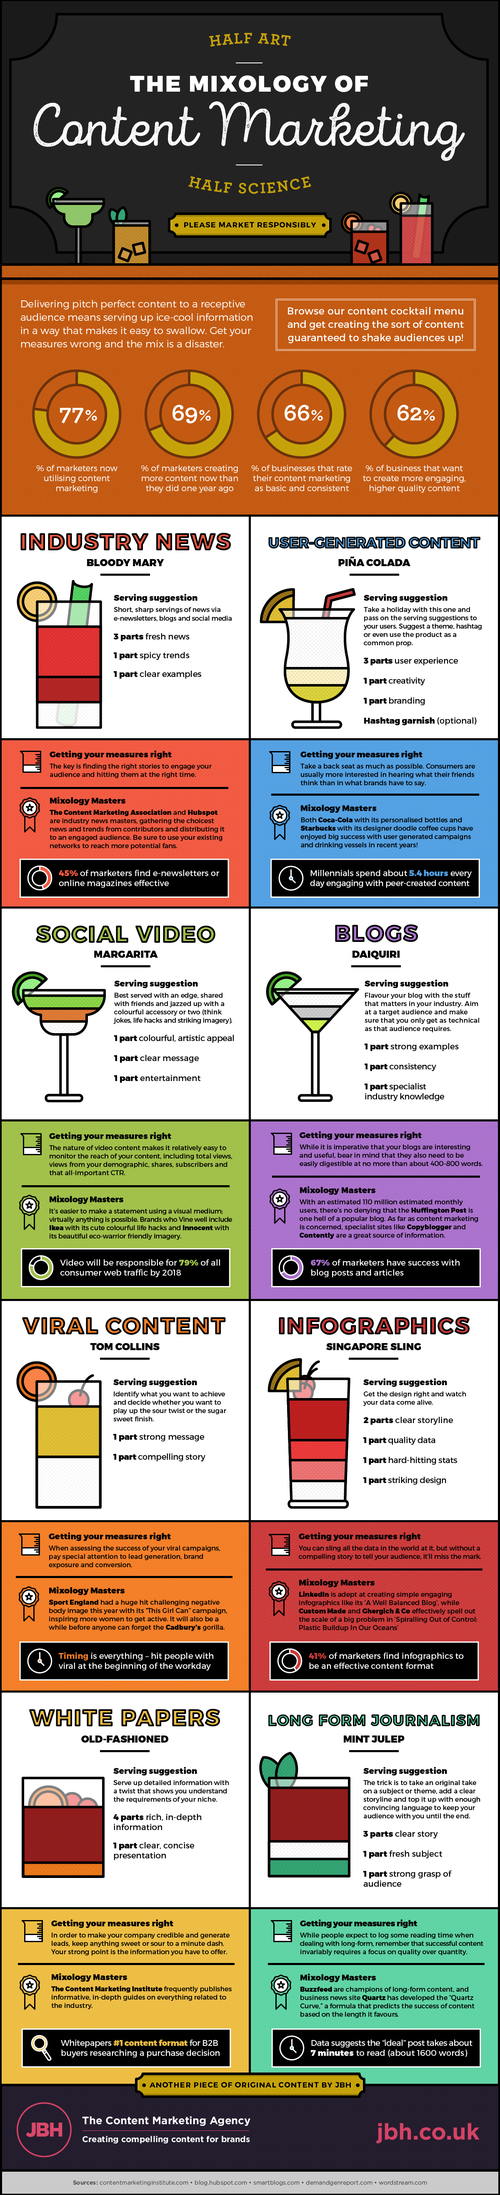 Using Pinterest to find Infographics for your Blog